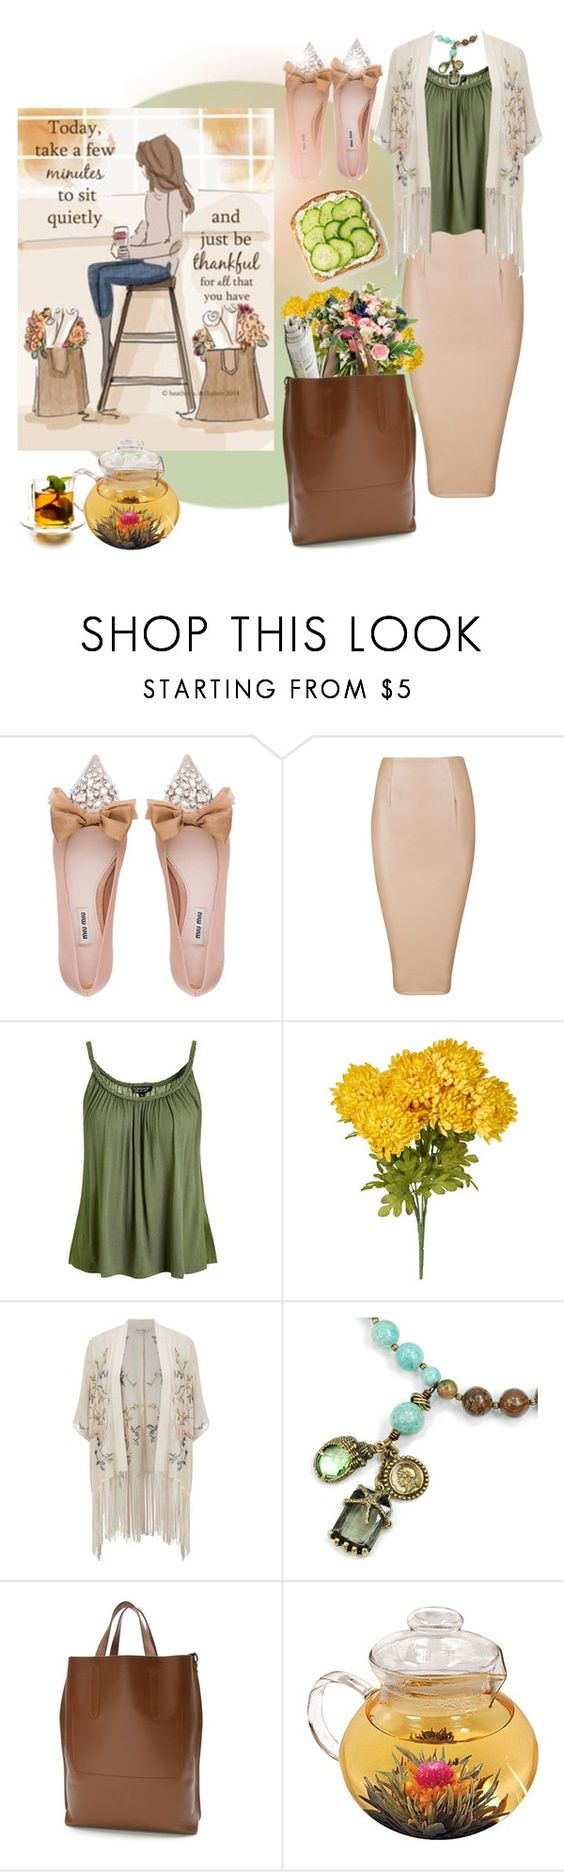 """Stop. Take a moment."" by amara-m-hafeez ❤ liked on Polyvore featuring Topshop, Miss Selfridge, Sweet Romance, Louis Vuitton and MAC Cosmetics"